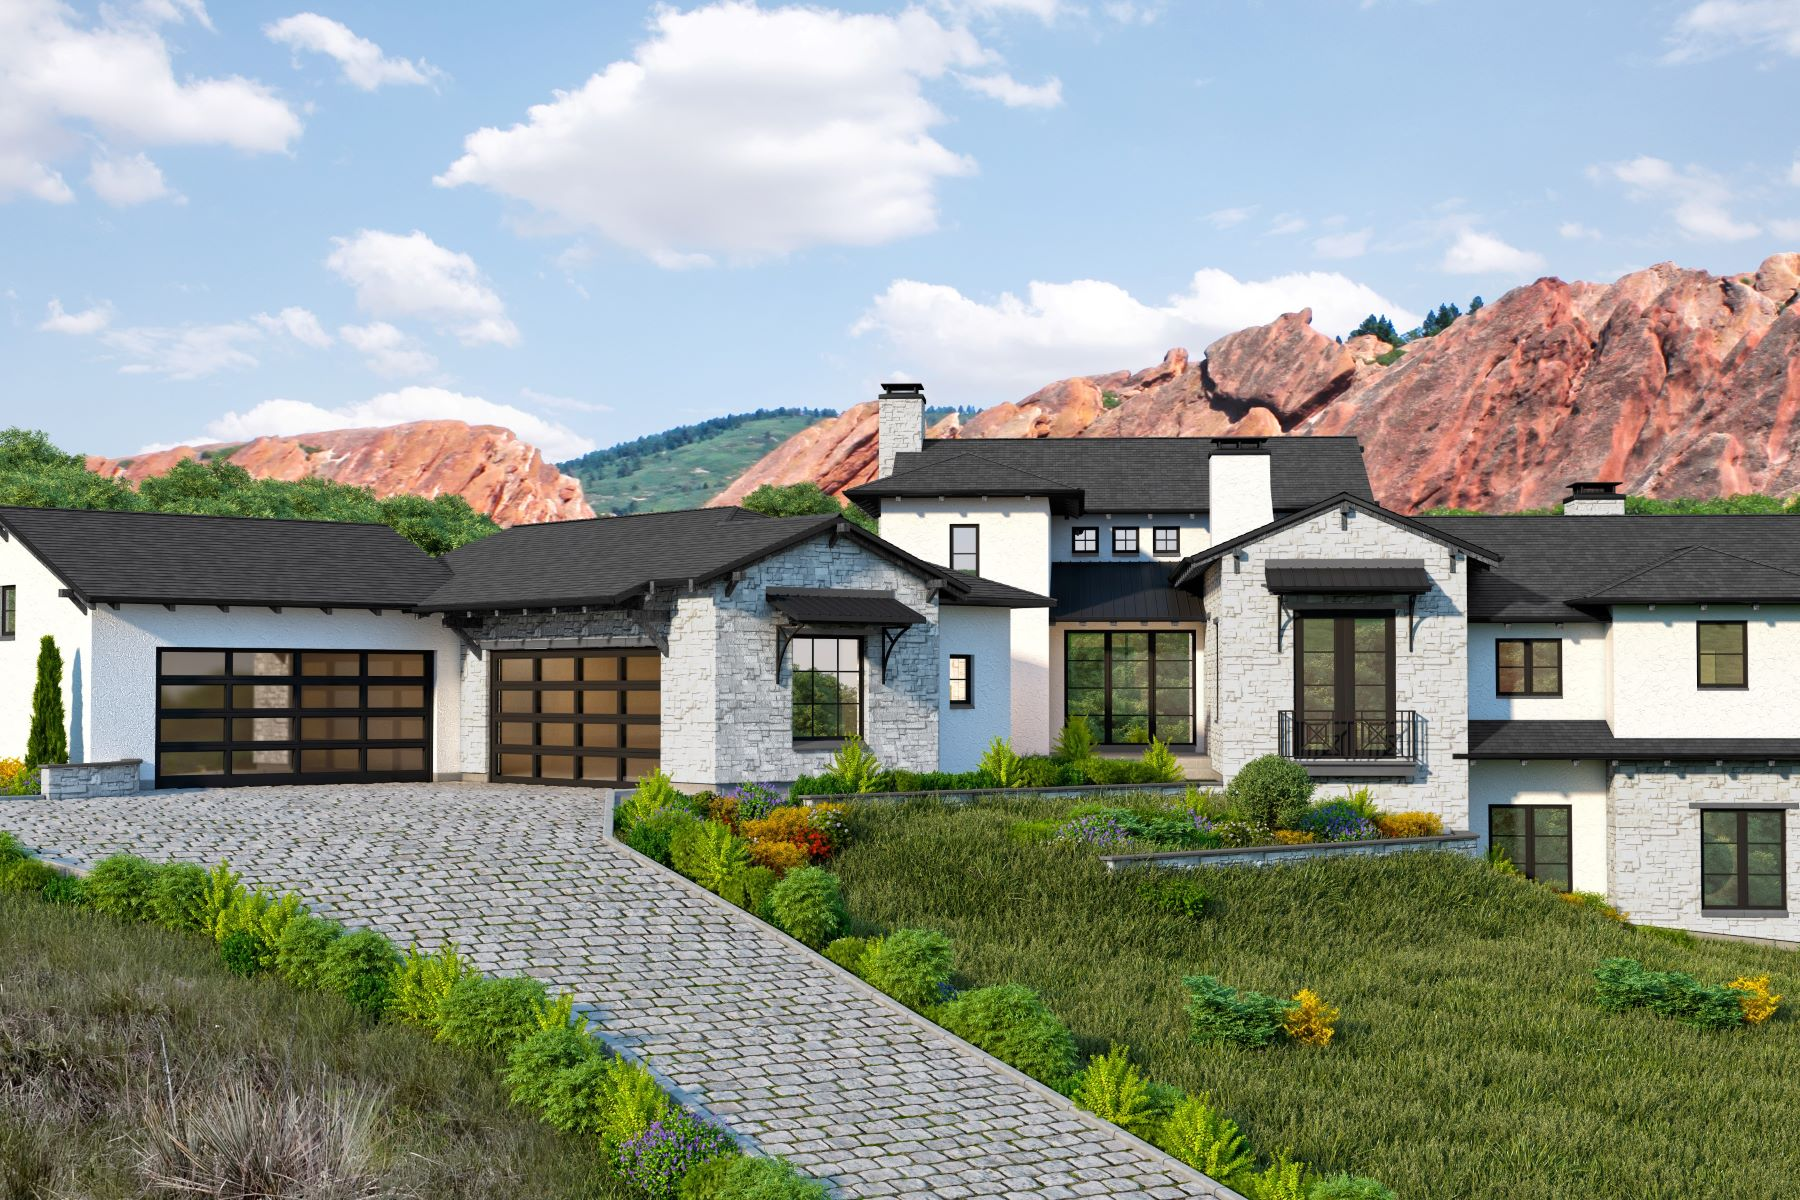 Property for Active at 10655 Leonardo Pl 10655 Leonardo Pl Littleton, Colorado 80125 United States